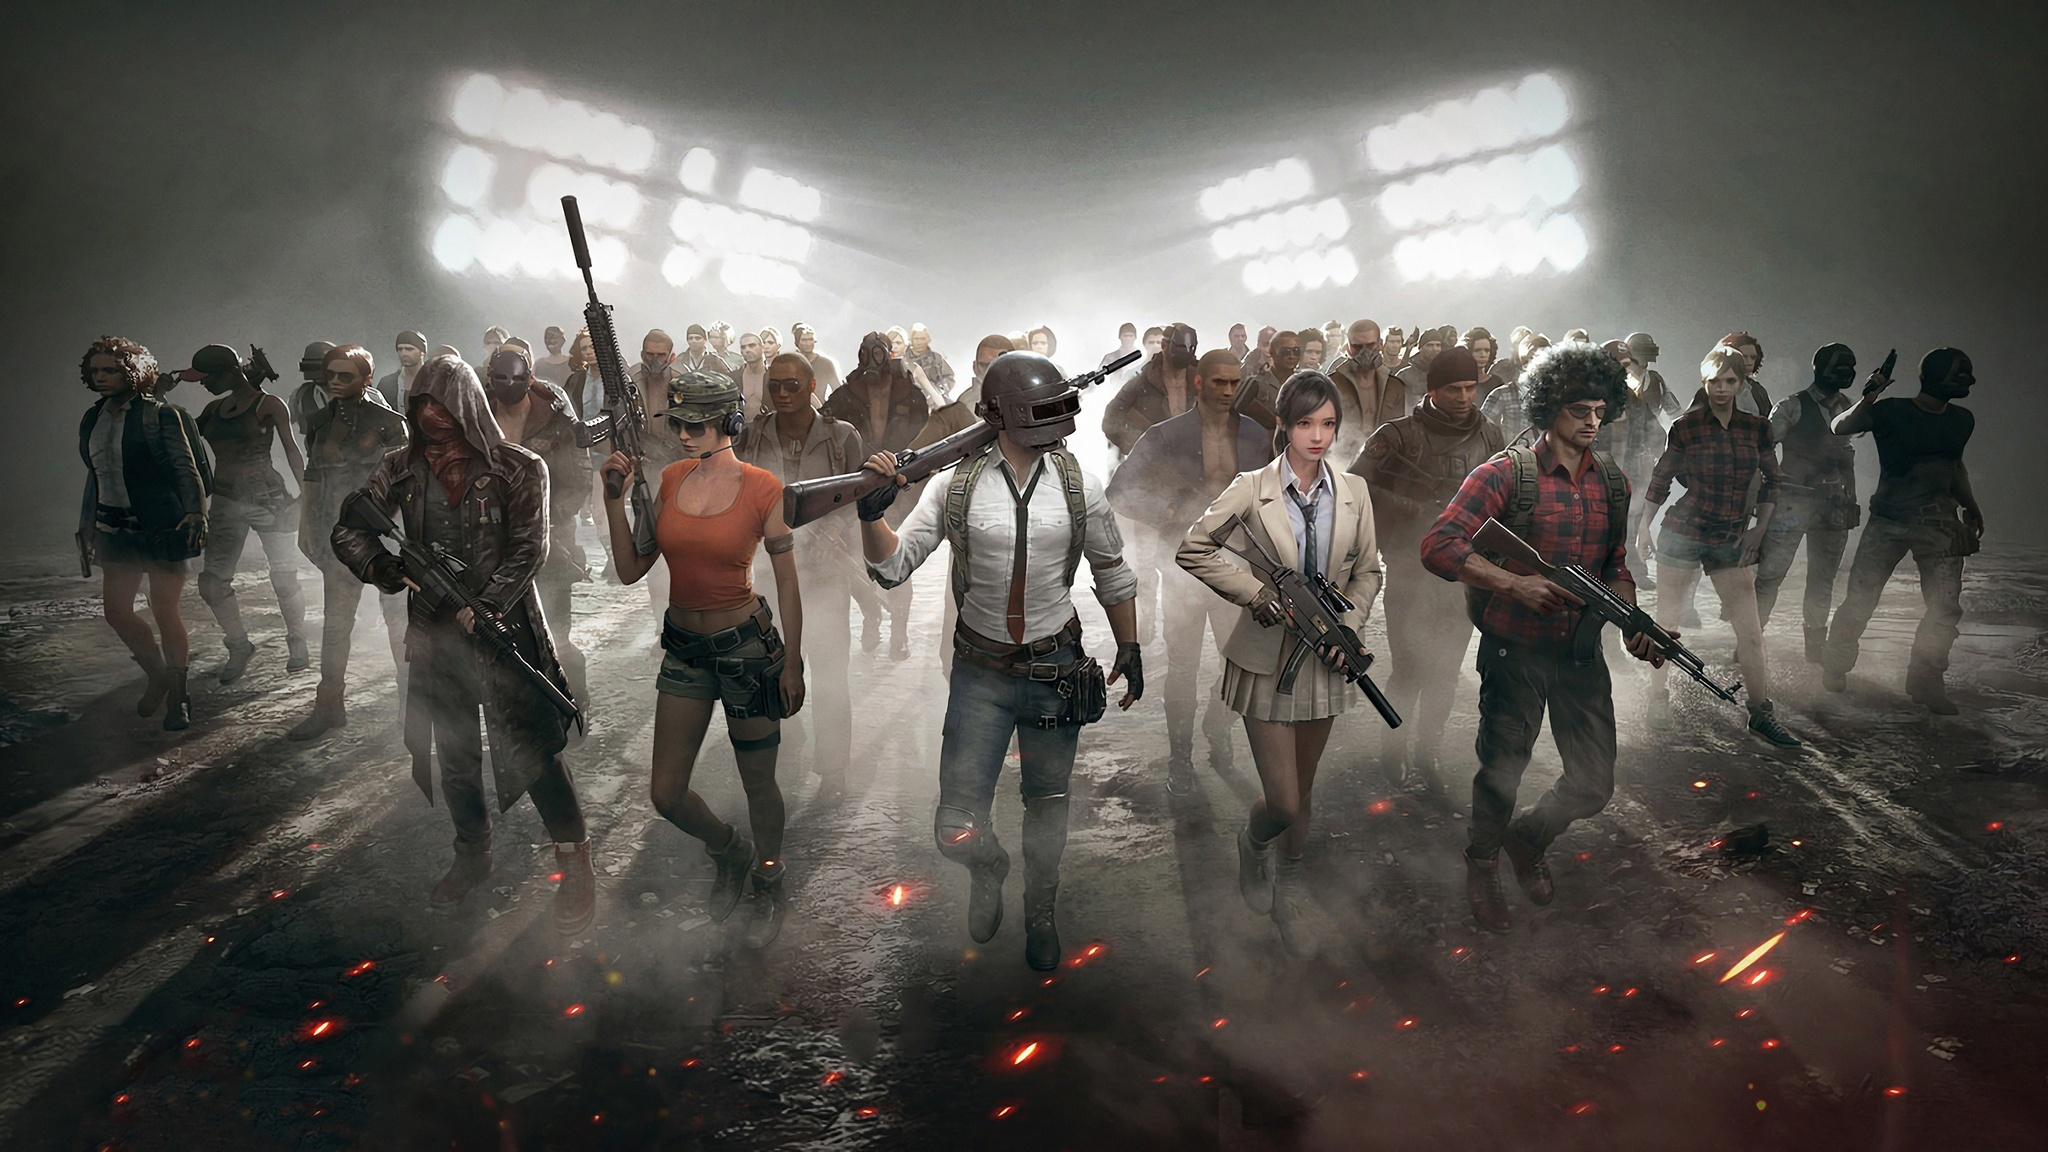 Playerunknowns Battlegrounds Game Hd Games 4k Wallpapers: 2048x1152 Pubg Characters 4k 2048x1152 Resolution HD 4k